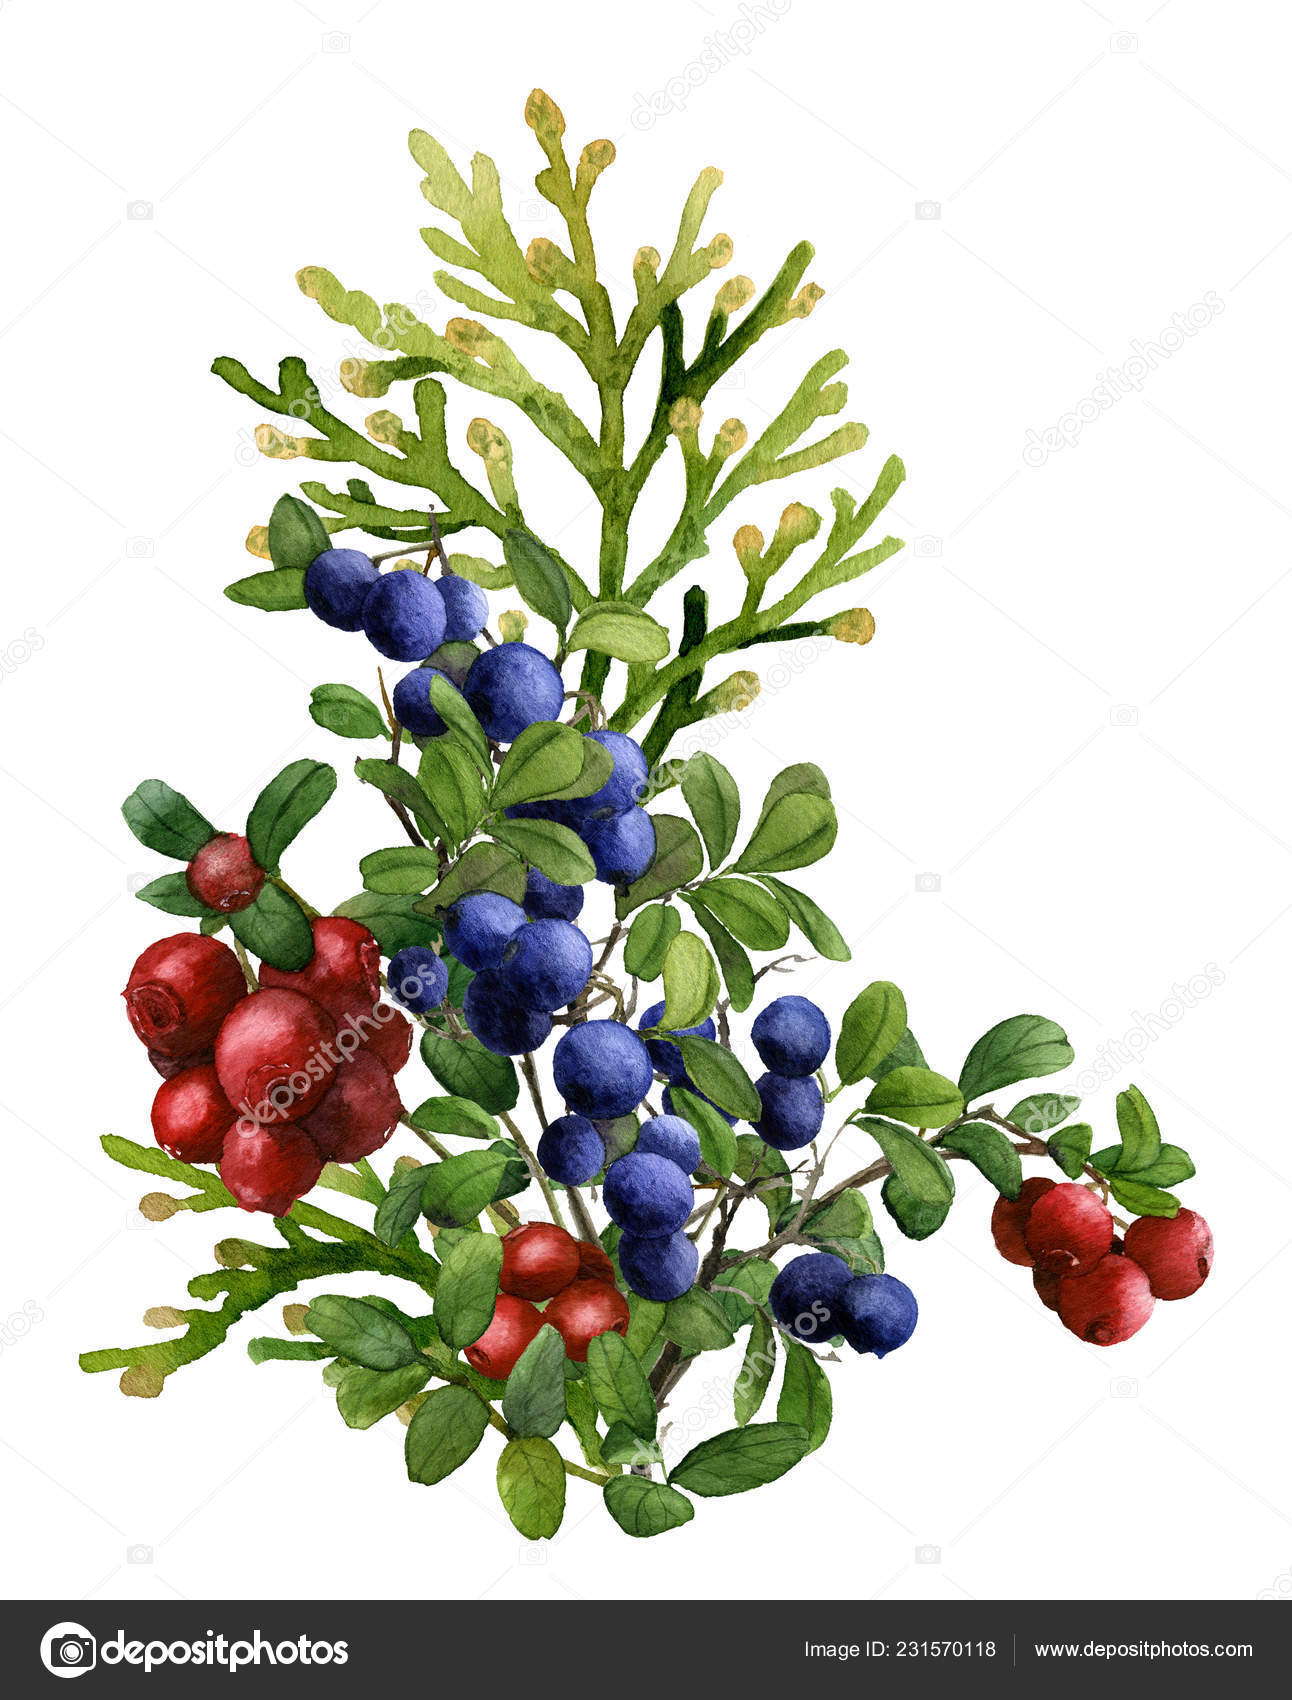 Beautiful Floral Arrangement Thuja Cowberry Blueberry Branches Hand Painted Watercolor Stock Photo Image By C Tanafortuna 231570118